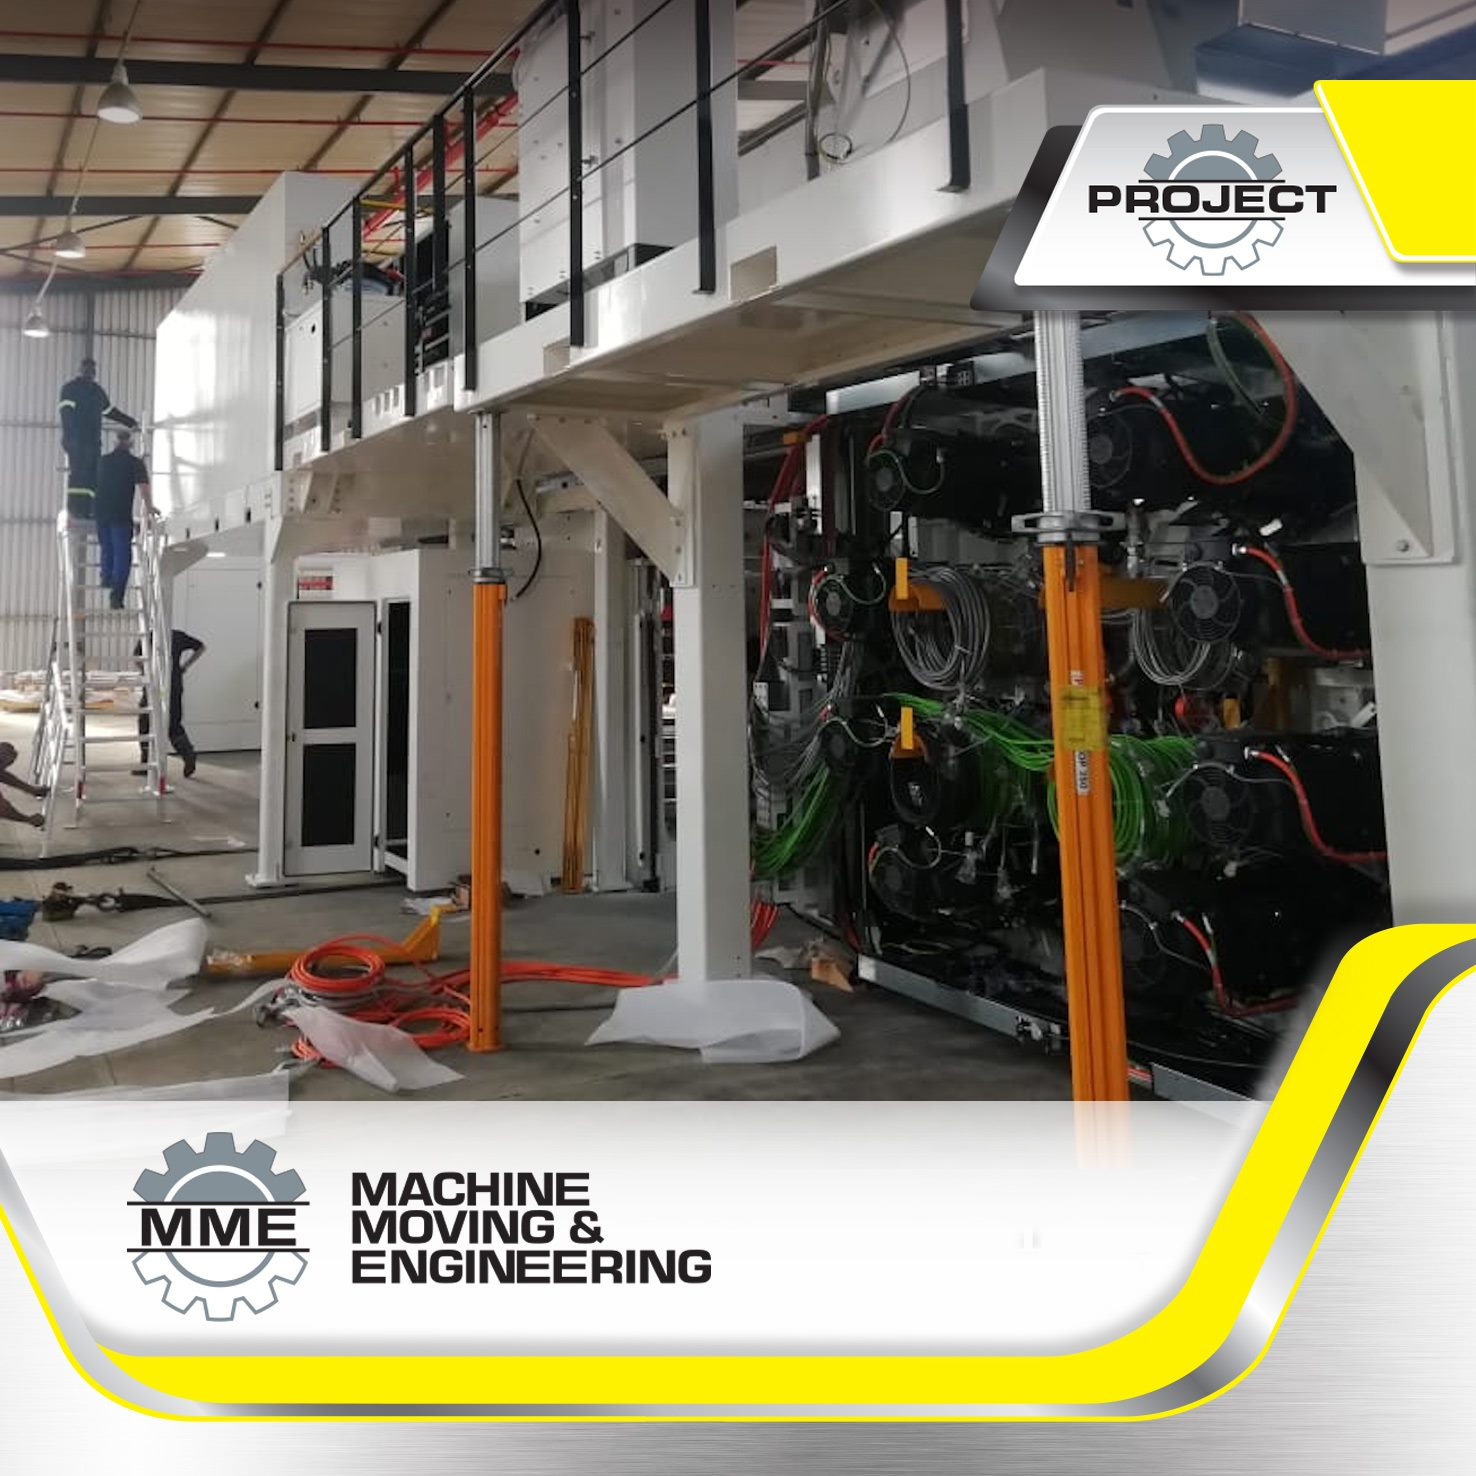 sack print line installation part-3-mme-projects-mme-machine-moving-engineering-machinery-equipment-gauteng-kwazulu-natal-south-africa-equipment